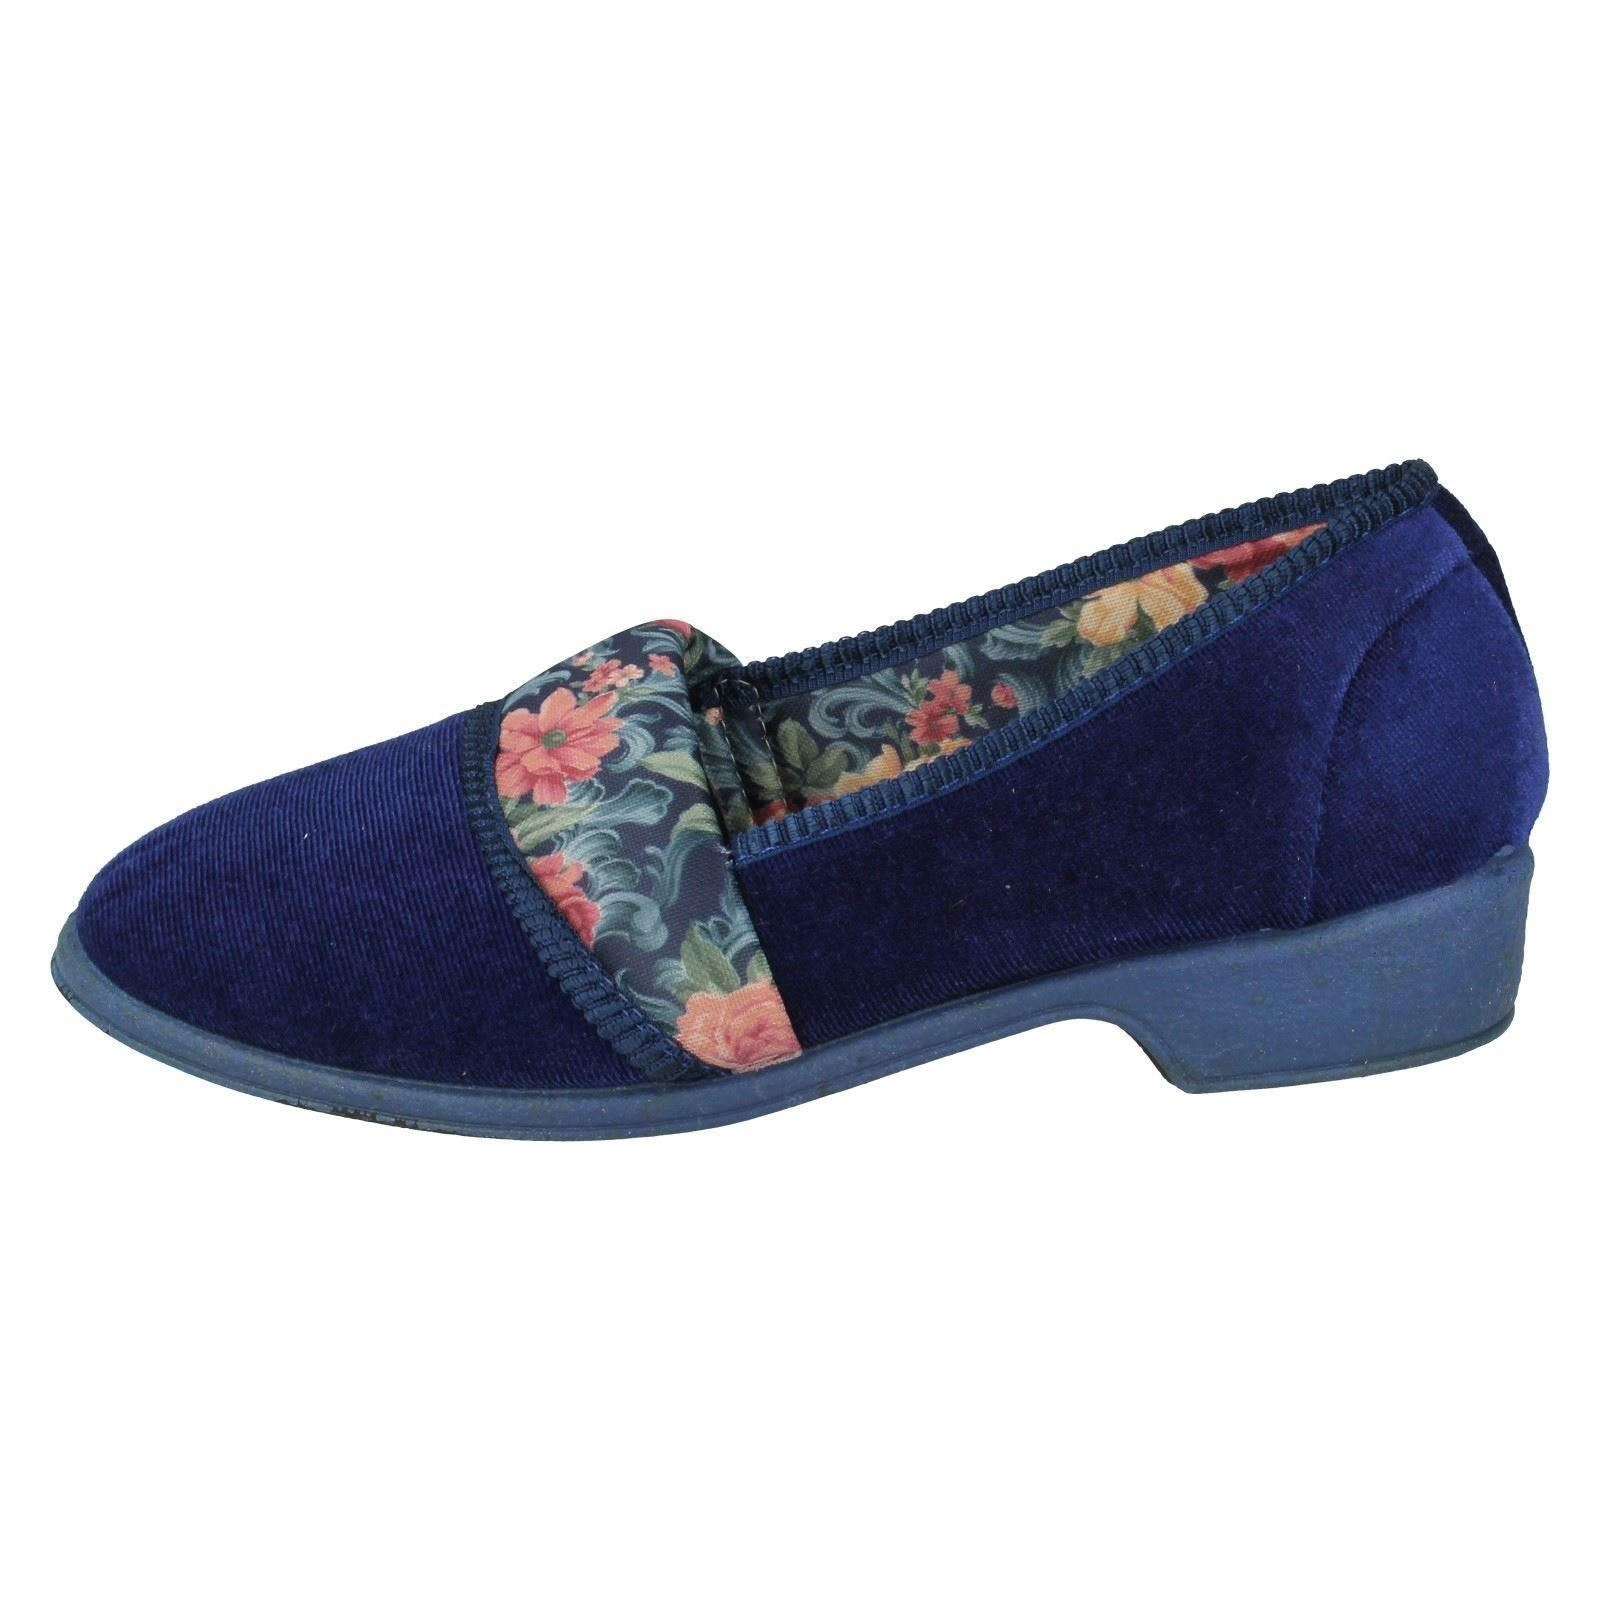 Ladies Ladylove Slip On Slippers The Style - Tina